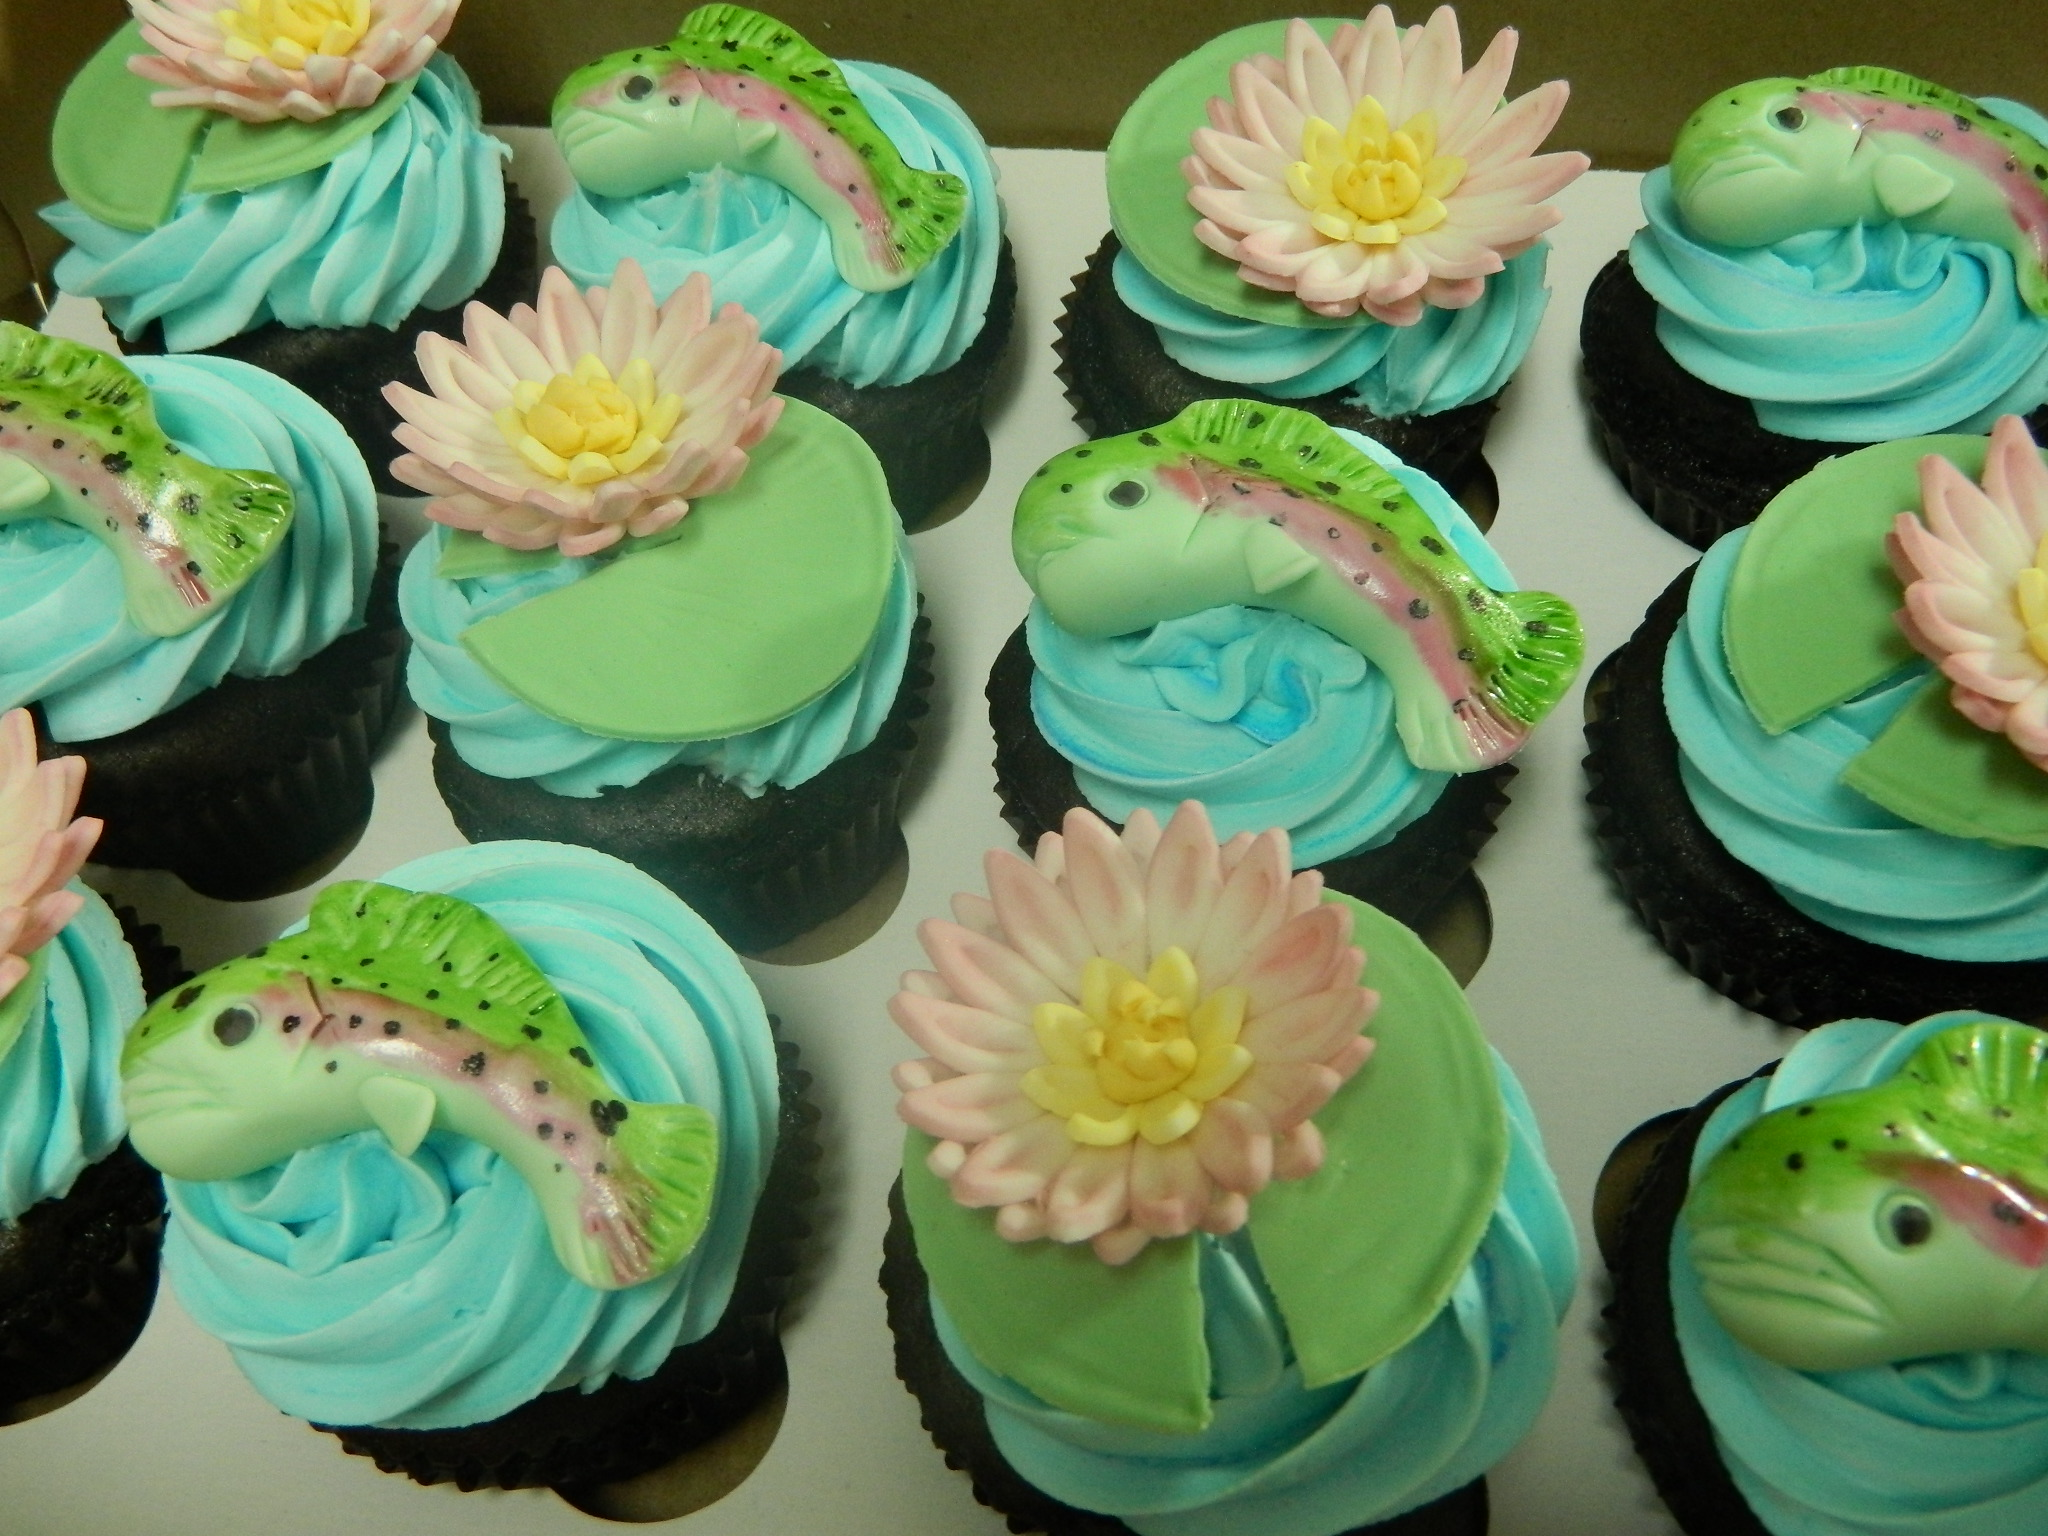 Outdoors/Nature themed custom cupcakes